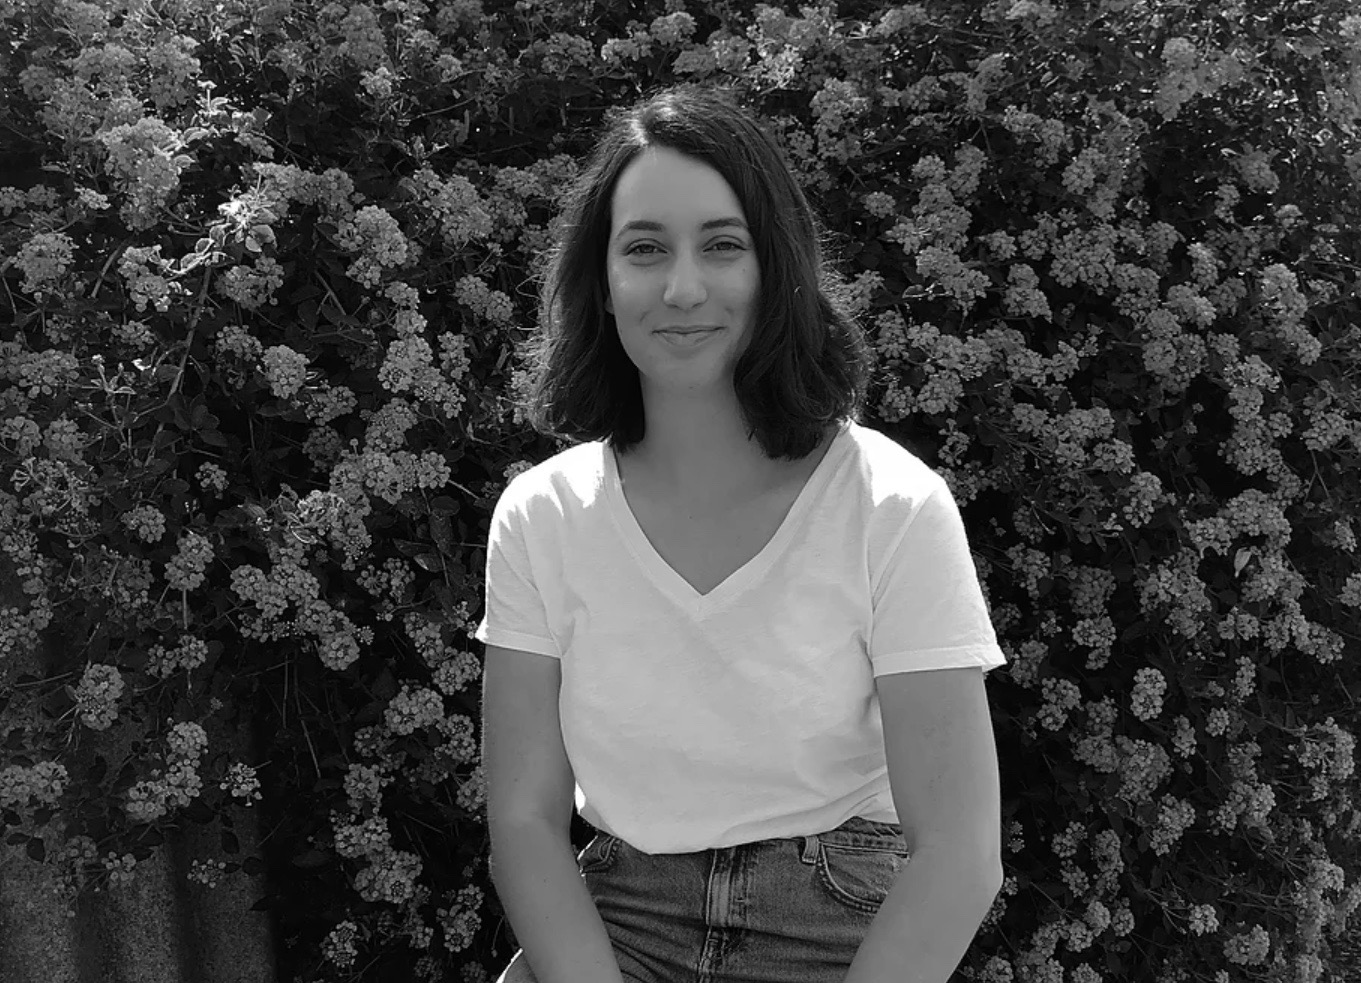 EP 25 | Contacting Potential Clients, Social Algorithms, Advice @ More w. Digital Artist Emma Regolini